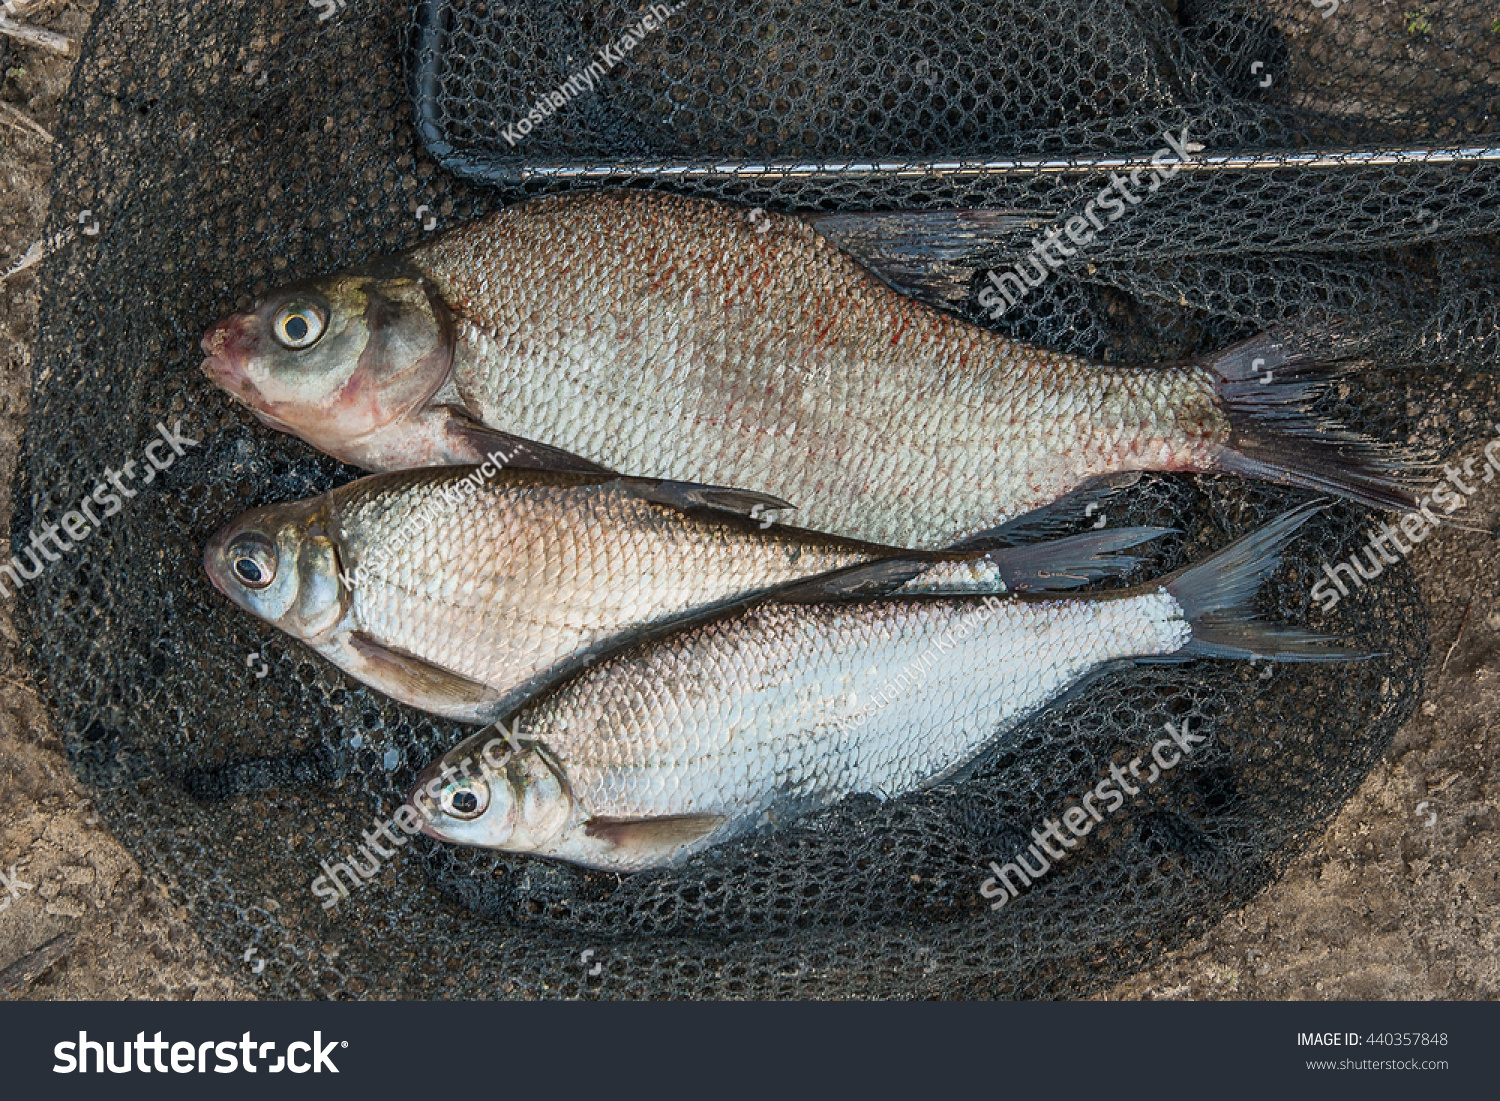 Freshwater fish bream - Freshwater Fish Just Taken From The Water Several Bream Fish And Silver Bream Or White